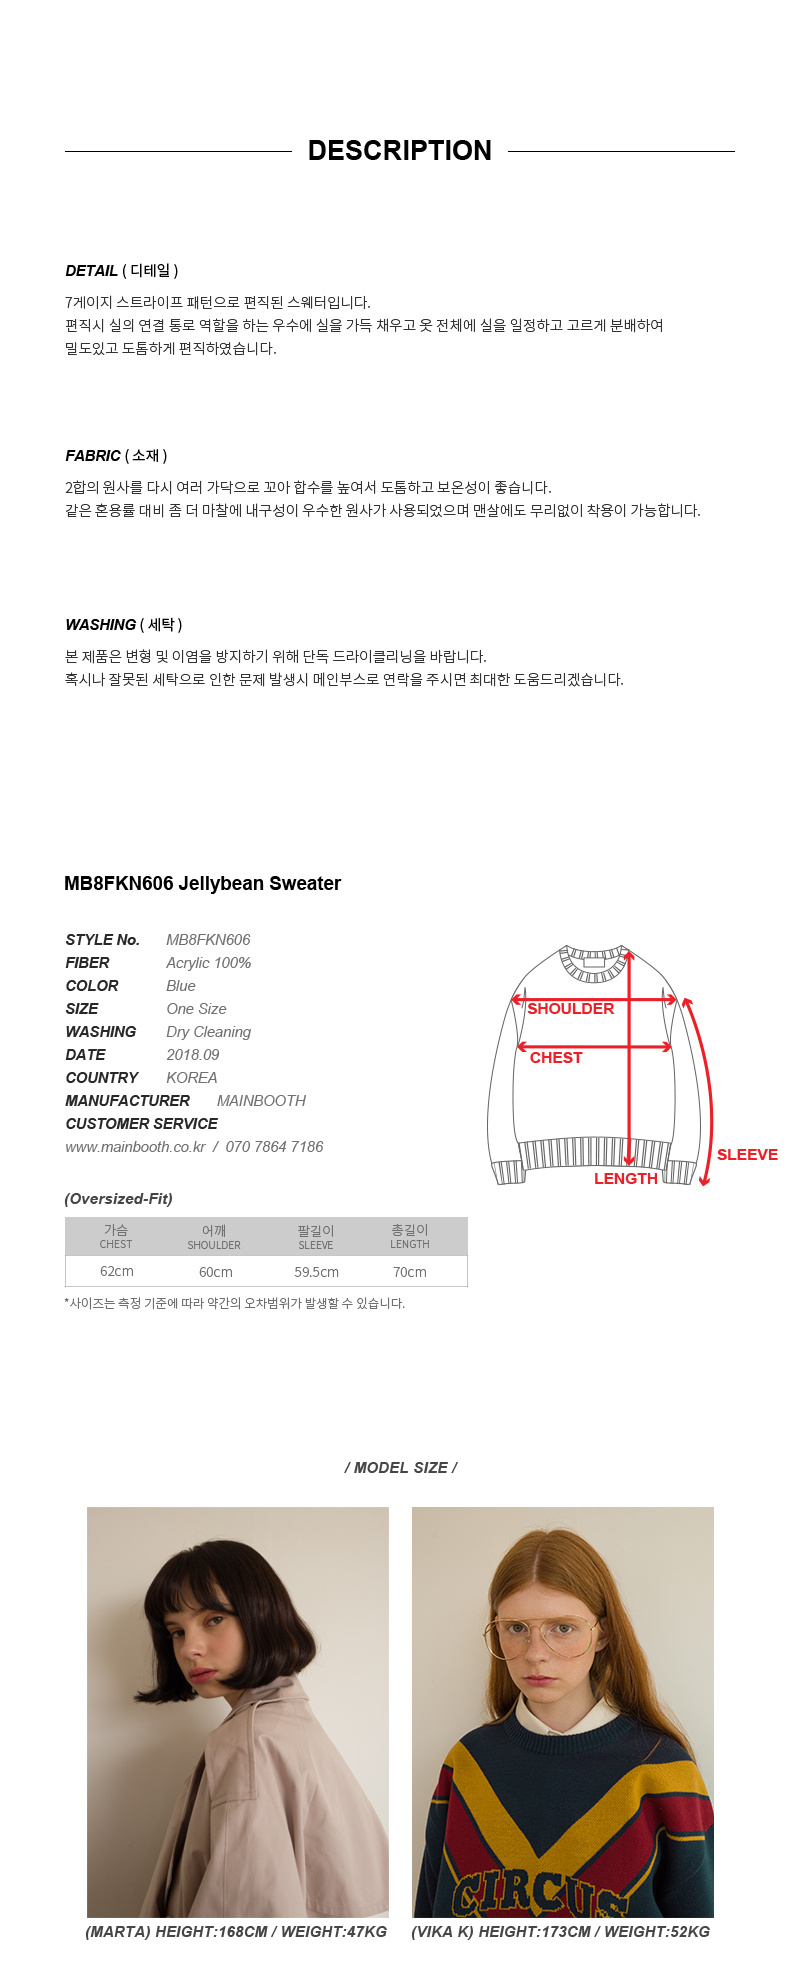 메인부스(MAINBOOTH) Jellybean Sweater(BLUE)